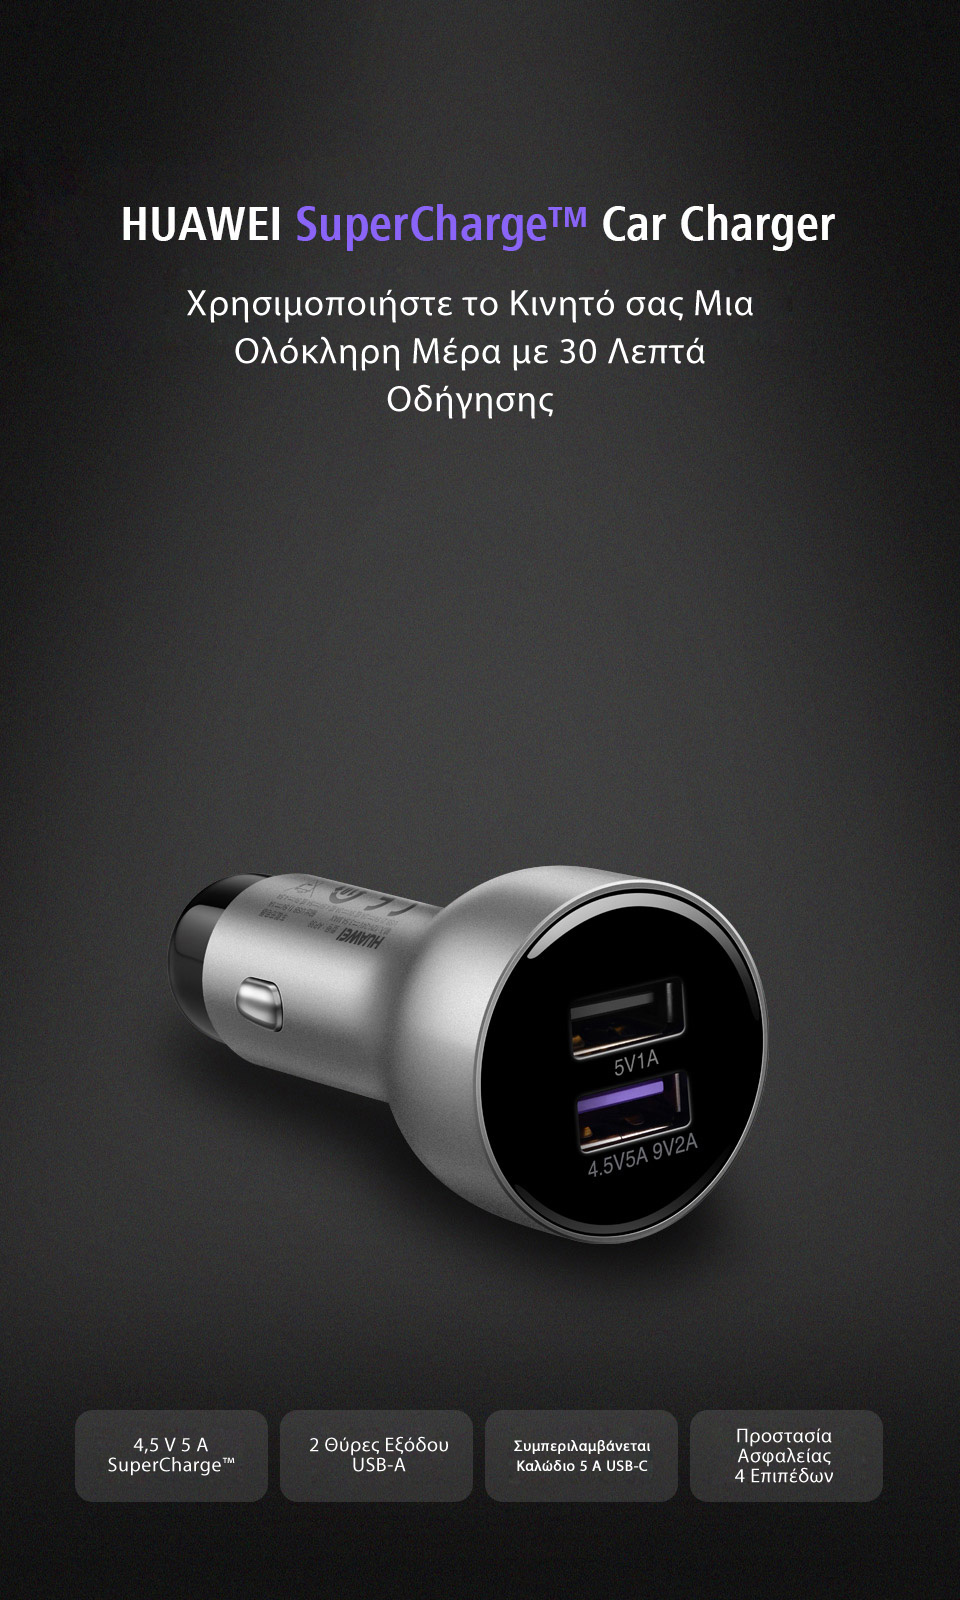 HUAWEI SuperCharge™ Car Charger